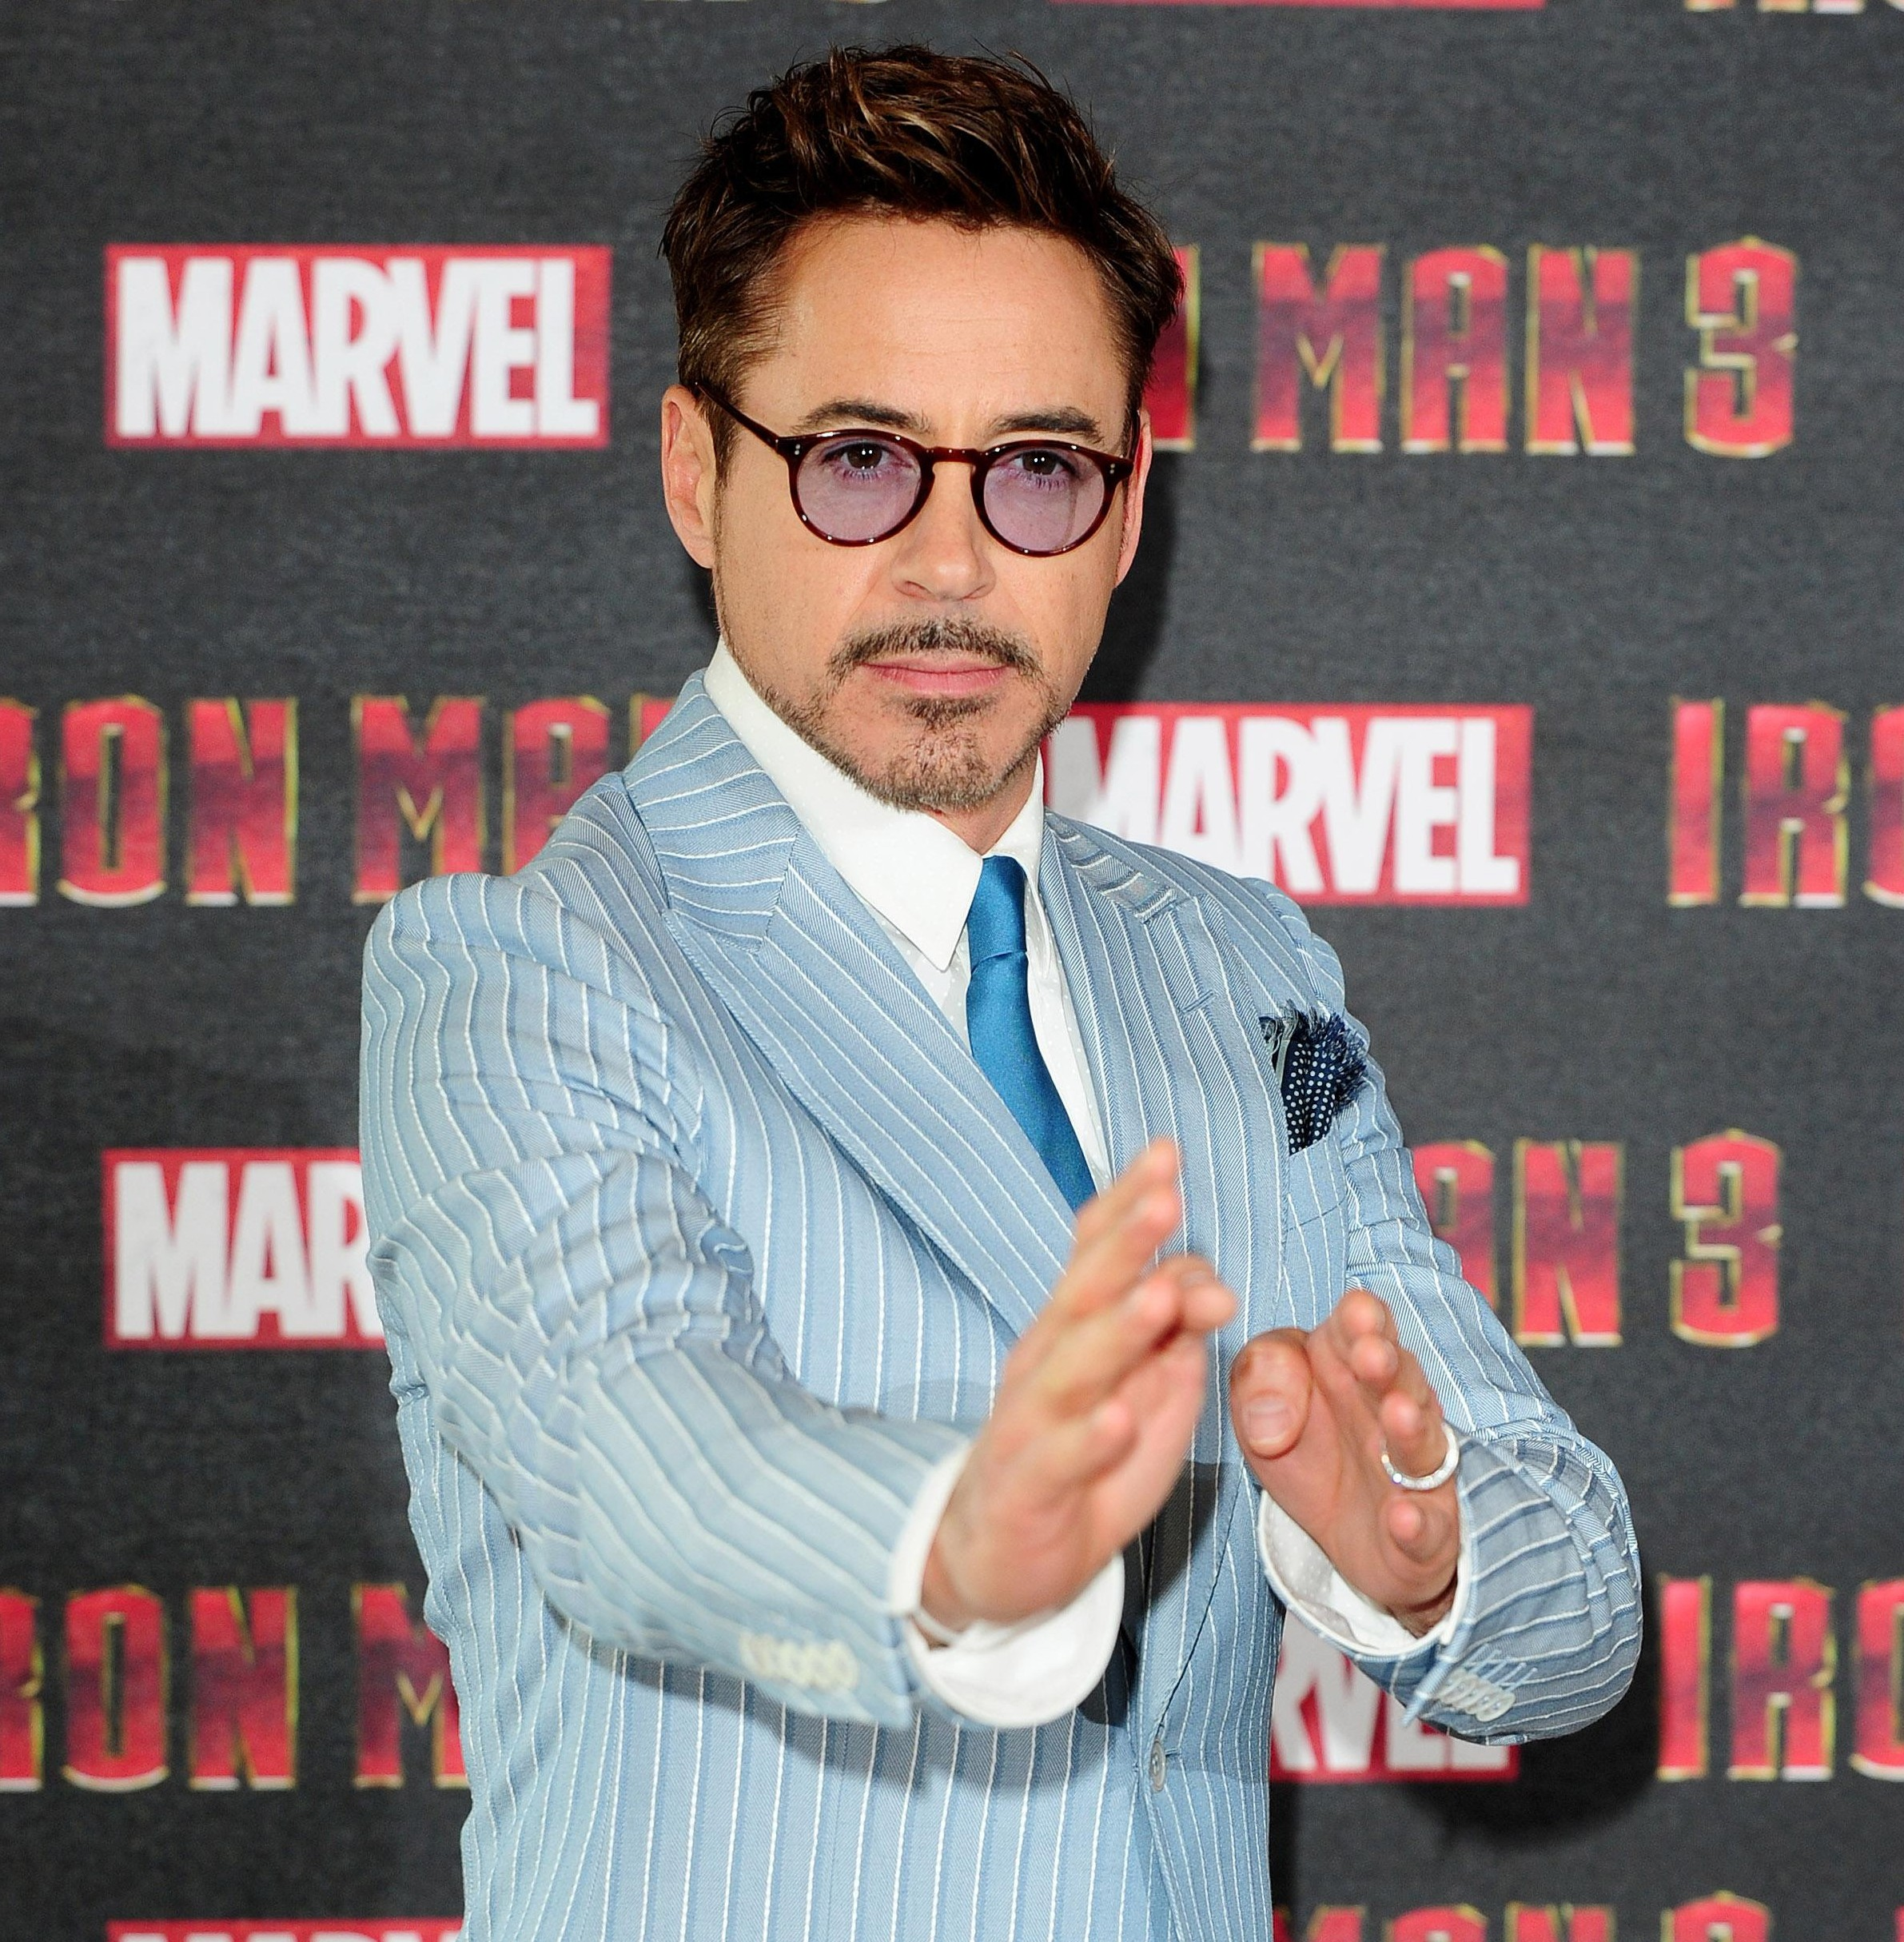 'I Earn, Man' – Or how Robert Downey Jr. saved the Avengers